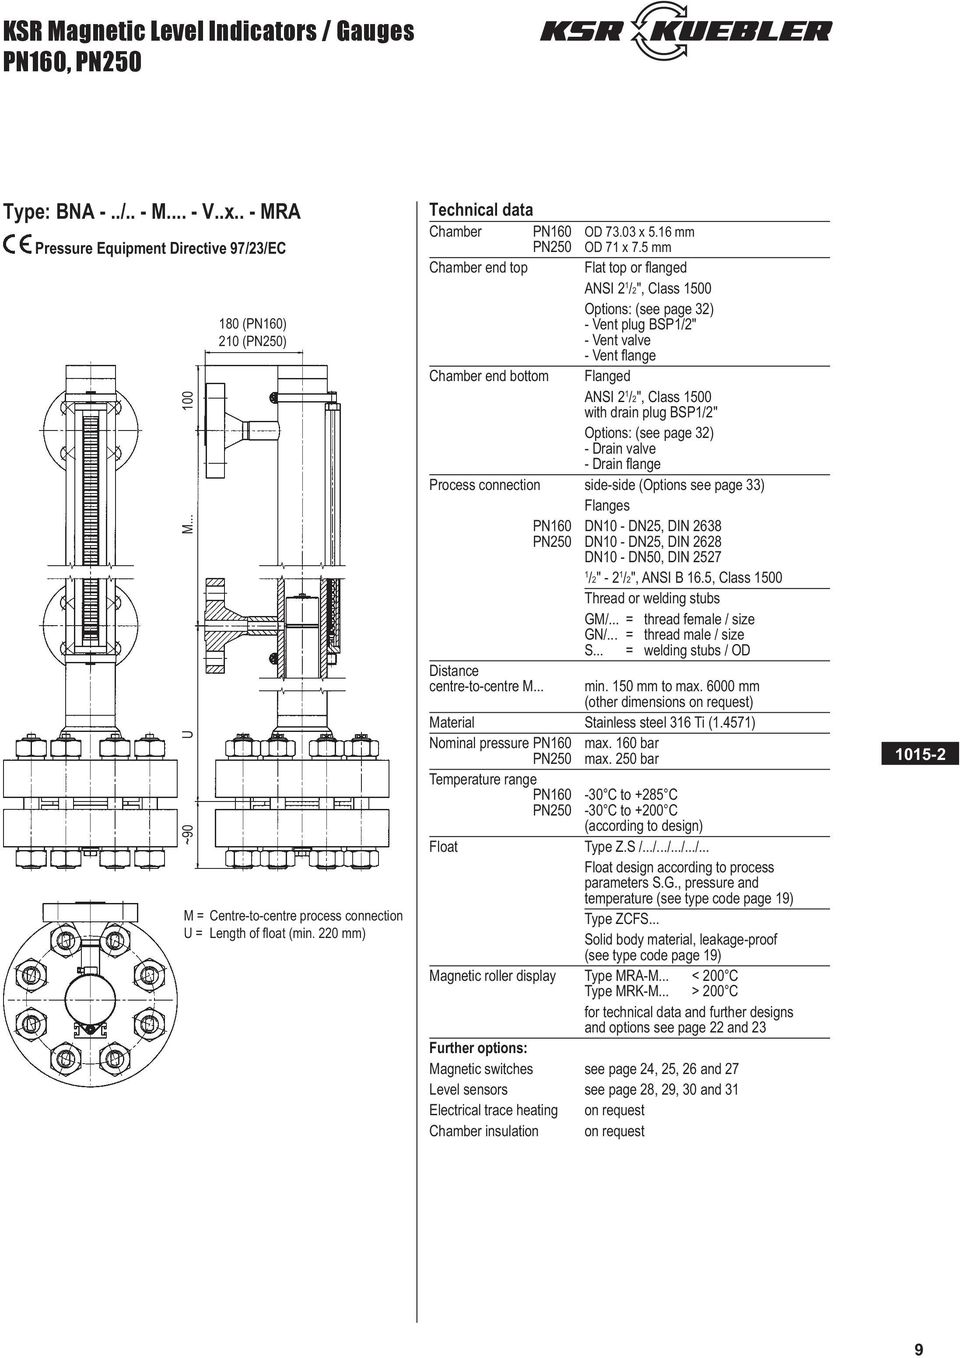 KSR Magnetic Level Indicators / Gauges - PDF